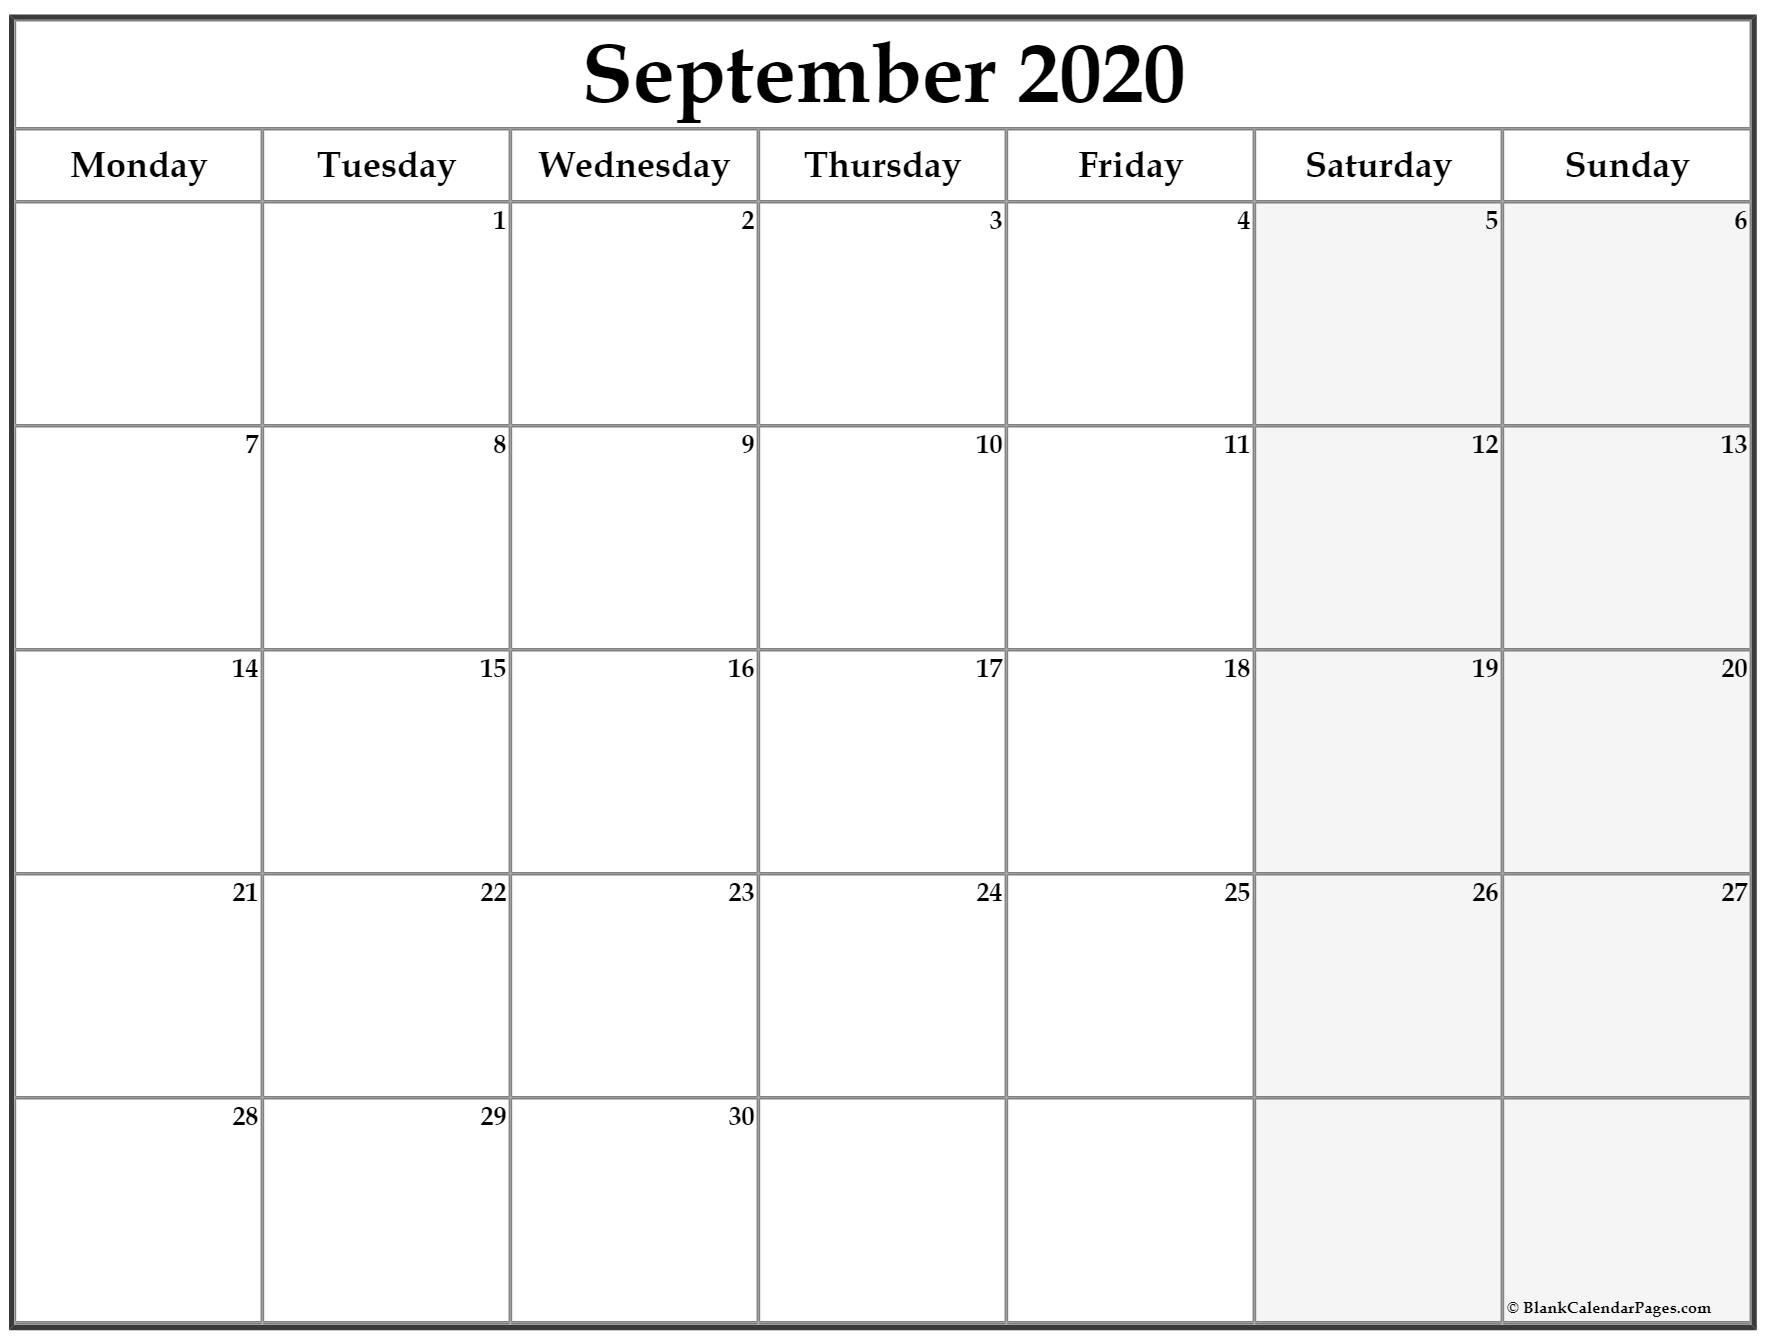 September 2020 Monday Calendar | Monday To Sunday Calendar Saturday To Friday